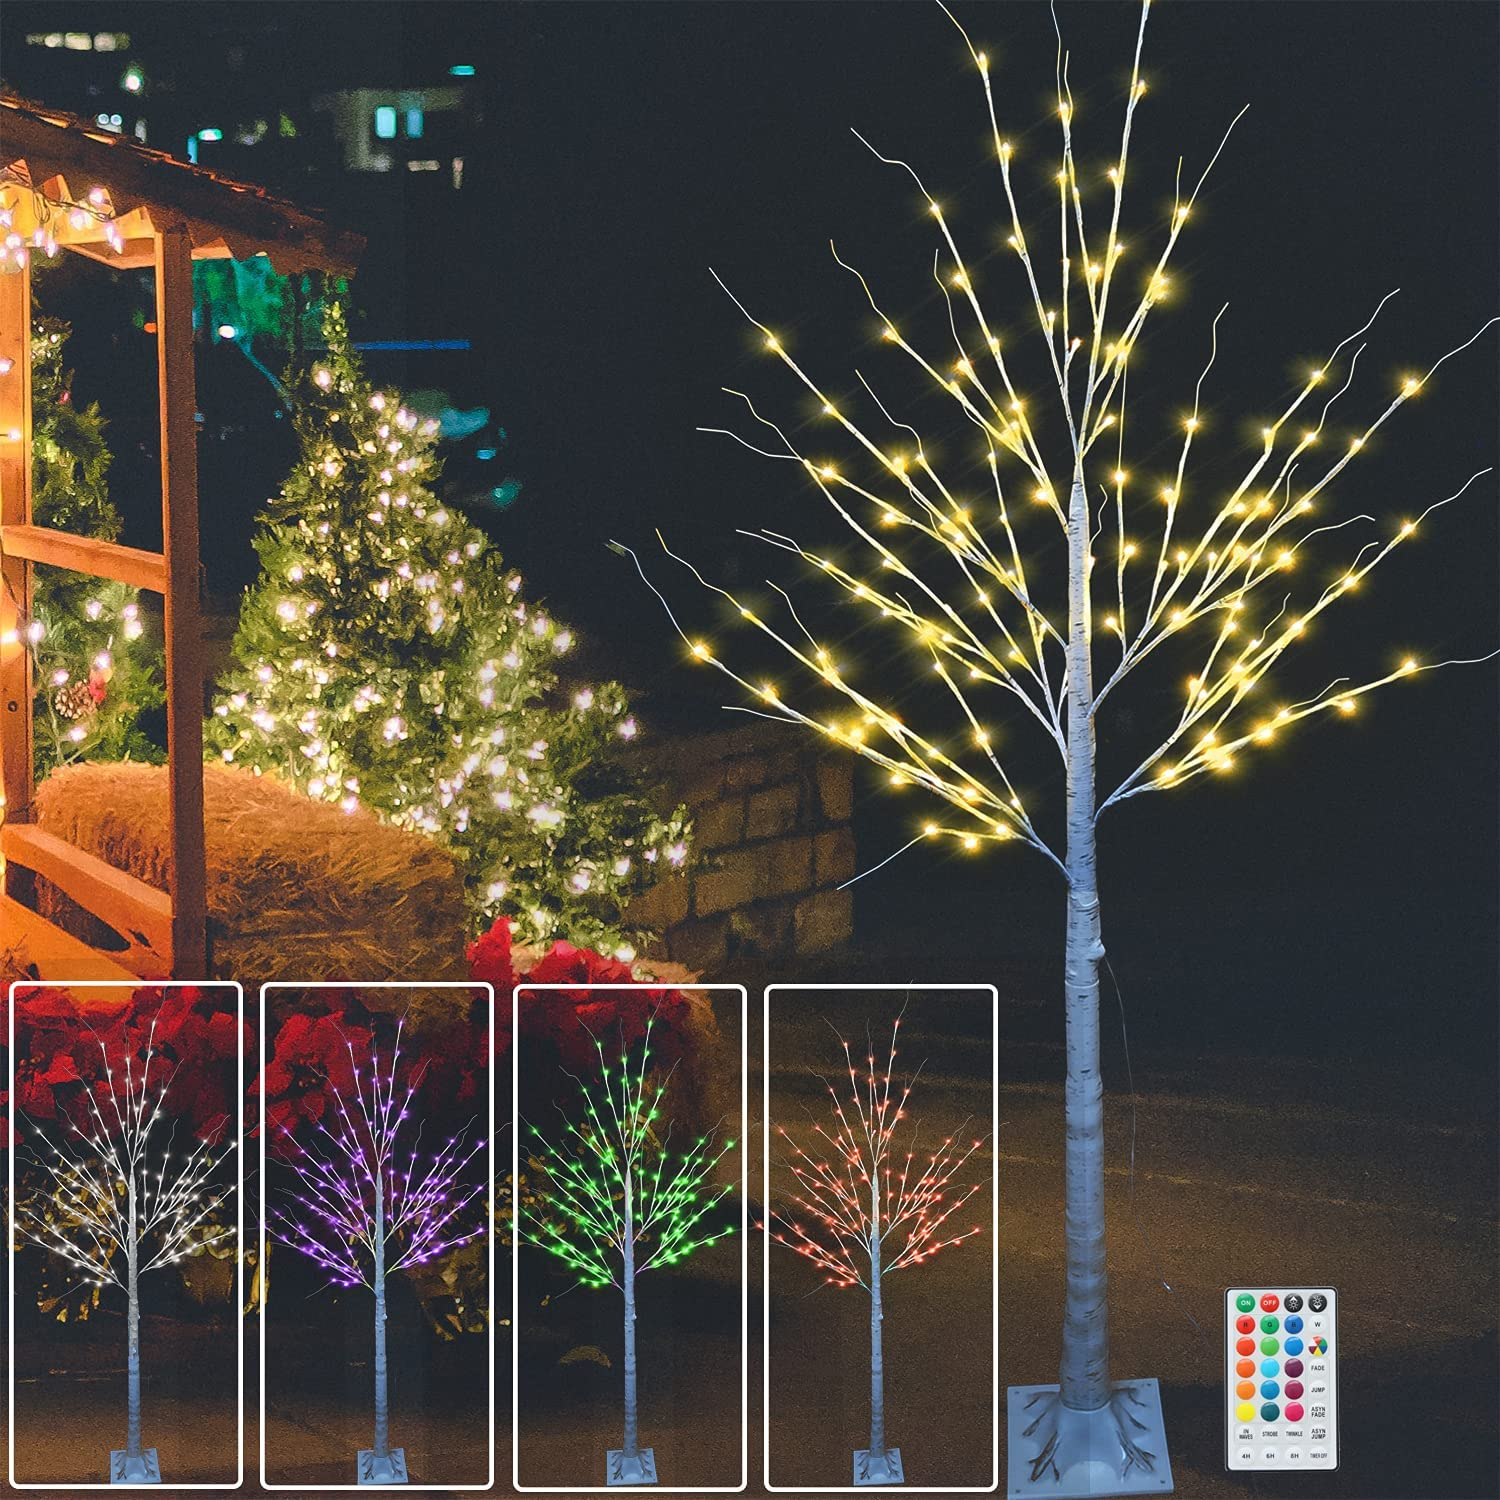 120 LED 6FT Colorful Lighted Birch Tree, Light Up Multicolored LED Artificial Tree with Colors Changing String Lights for Indoor Outdoor Christmas Halloween Party Home Wedding Garden Decor-6ft(RGB)